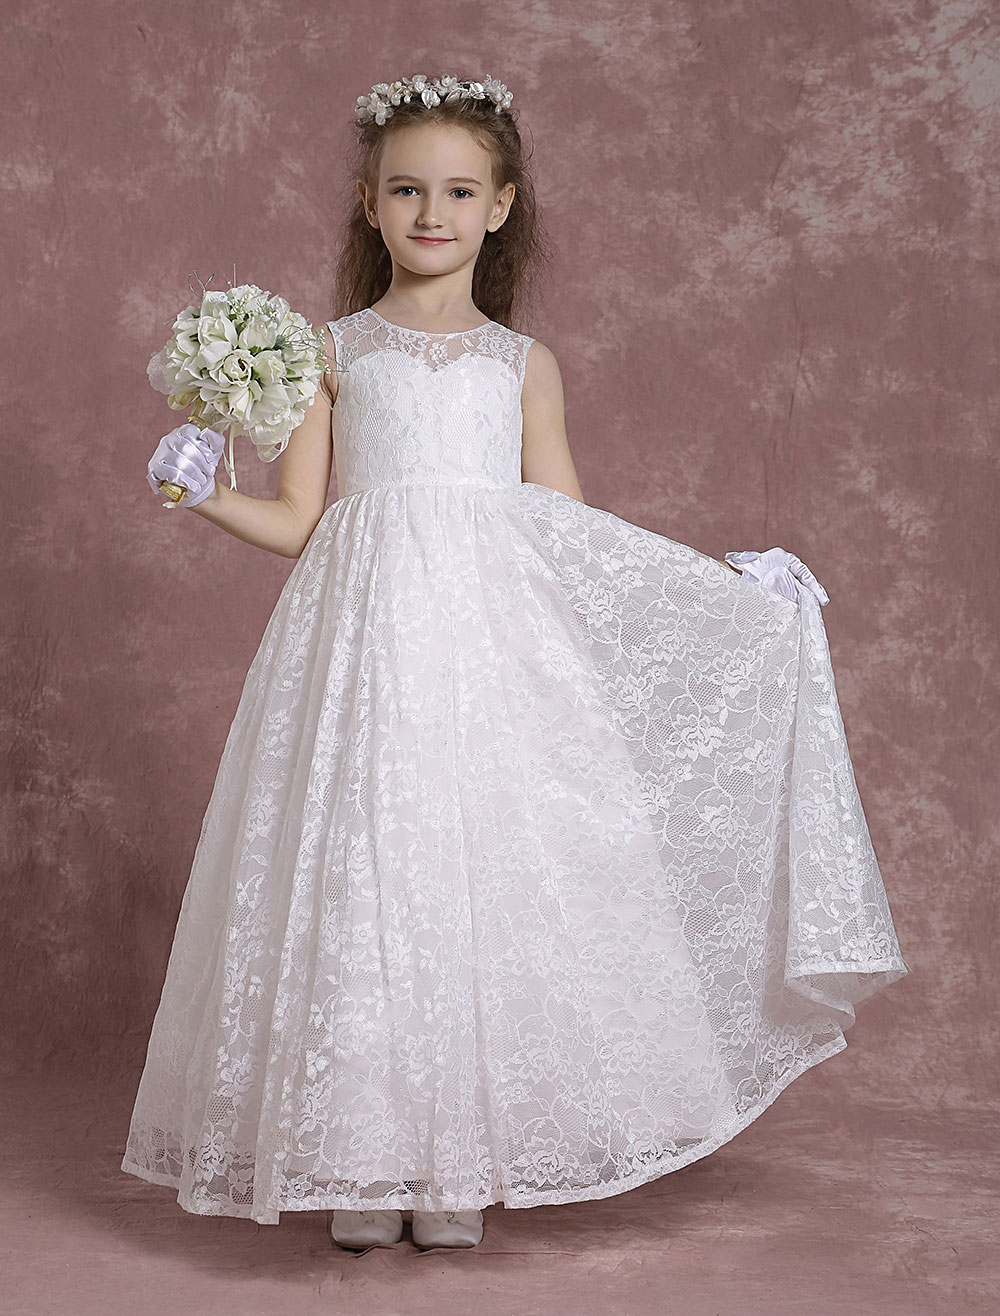 Lace Flower Girl Dresses A Line Pageant Dresses Toddler's Ivory Zipper Sleeveless Ankle Length First Communion Dresses